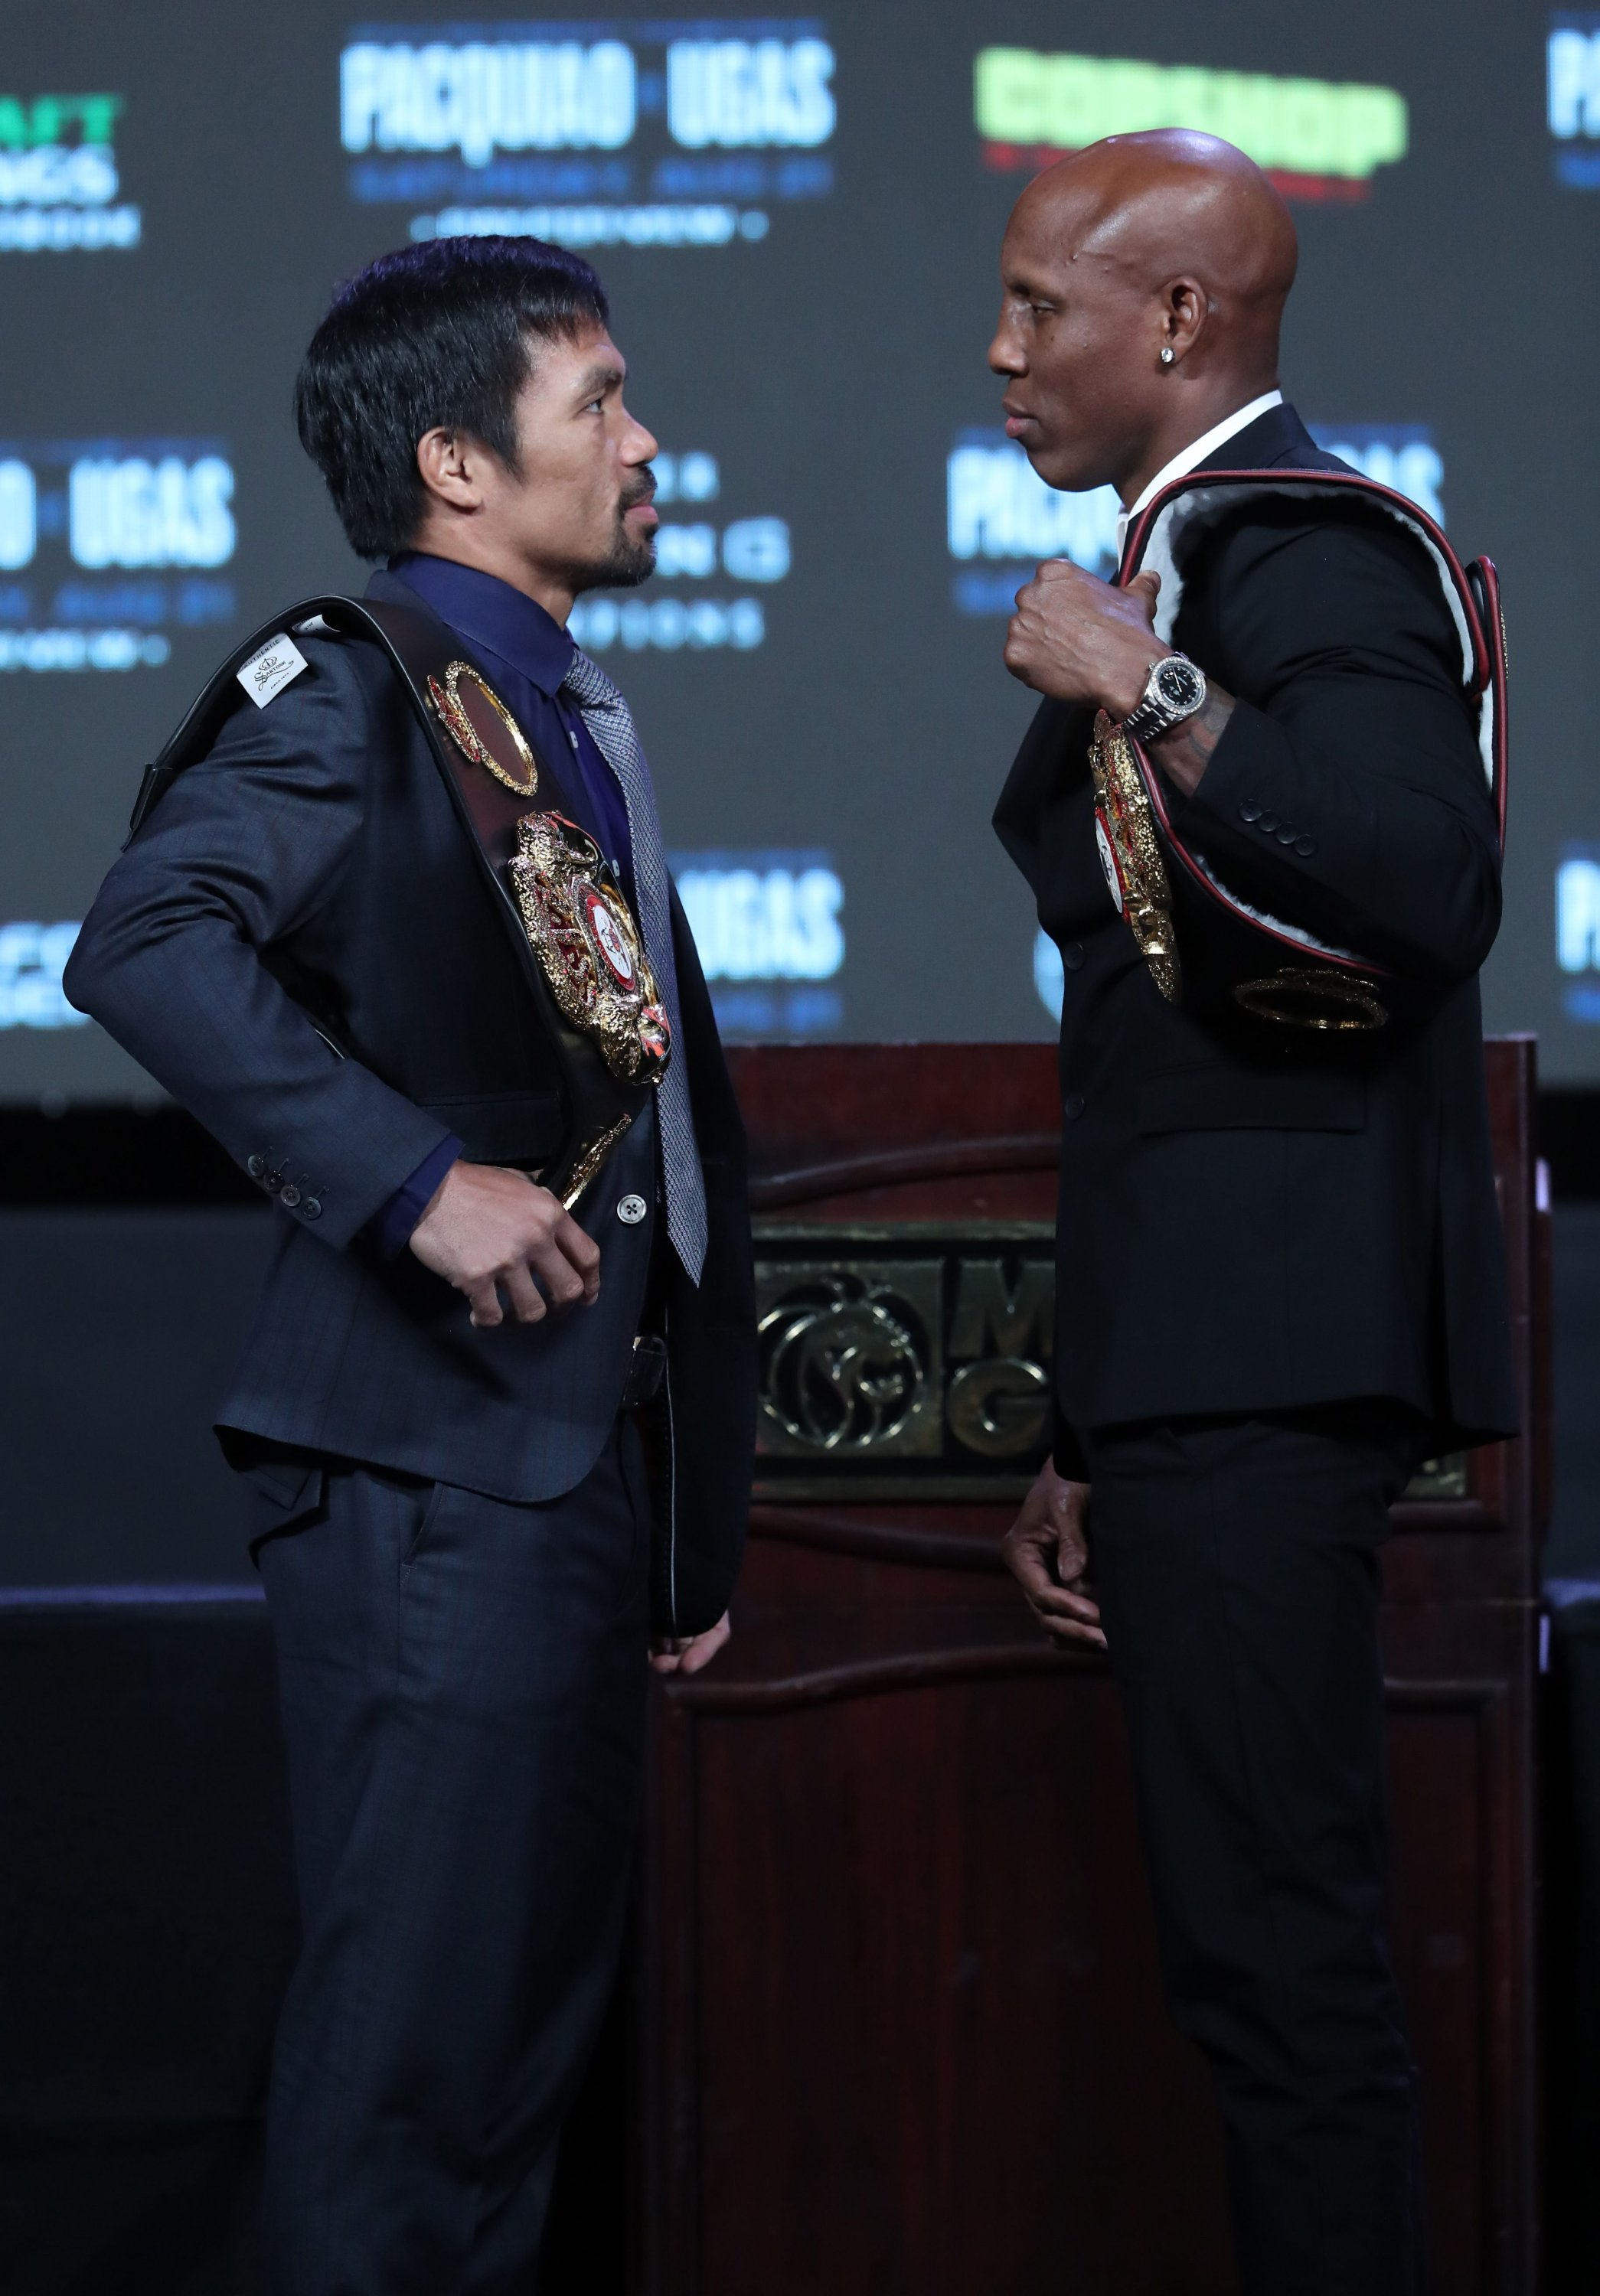 Manny Pacquiao (L) and WBA welterweight champion Yordenis Ugas face off during a news conference at MGM Grand Hotel & Casino, in Las Vegas, Nevada, U.S., Aug. 18, 2021. (AFP Photo)